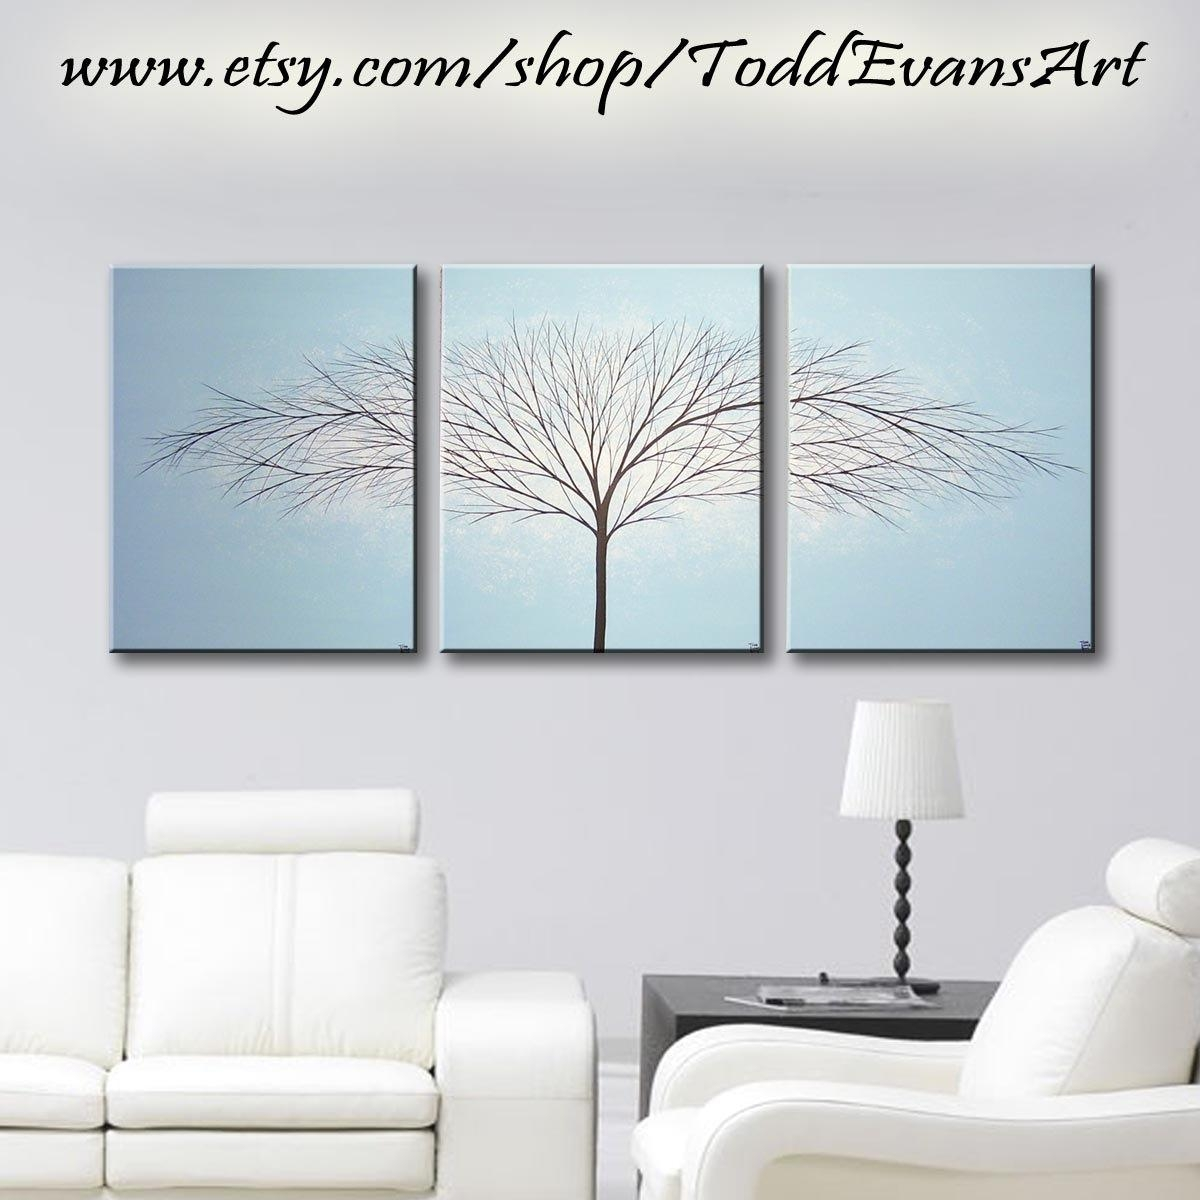 Large Wall Art 3 Piece Canvas Art Bedroom Wall Decor Tree Of Intended For Three Piece Canvas Wall Art (View 12 of 20)